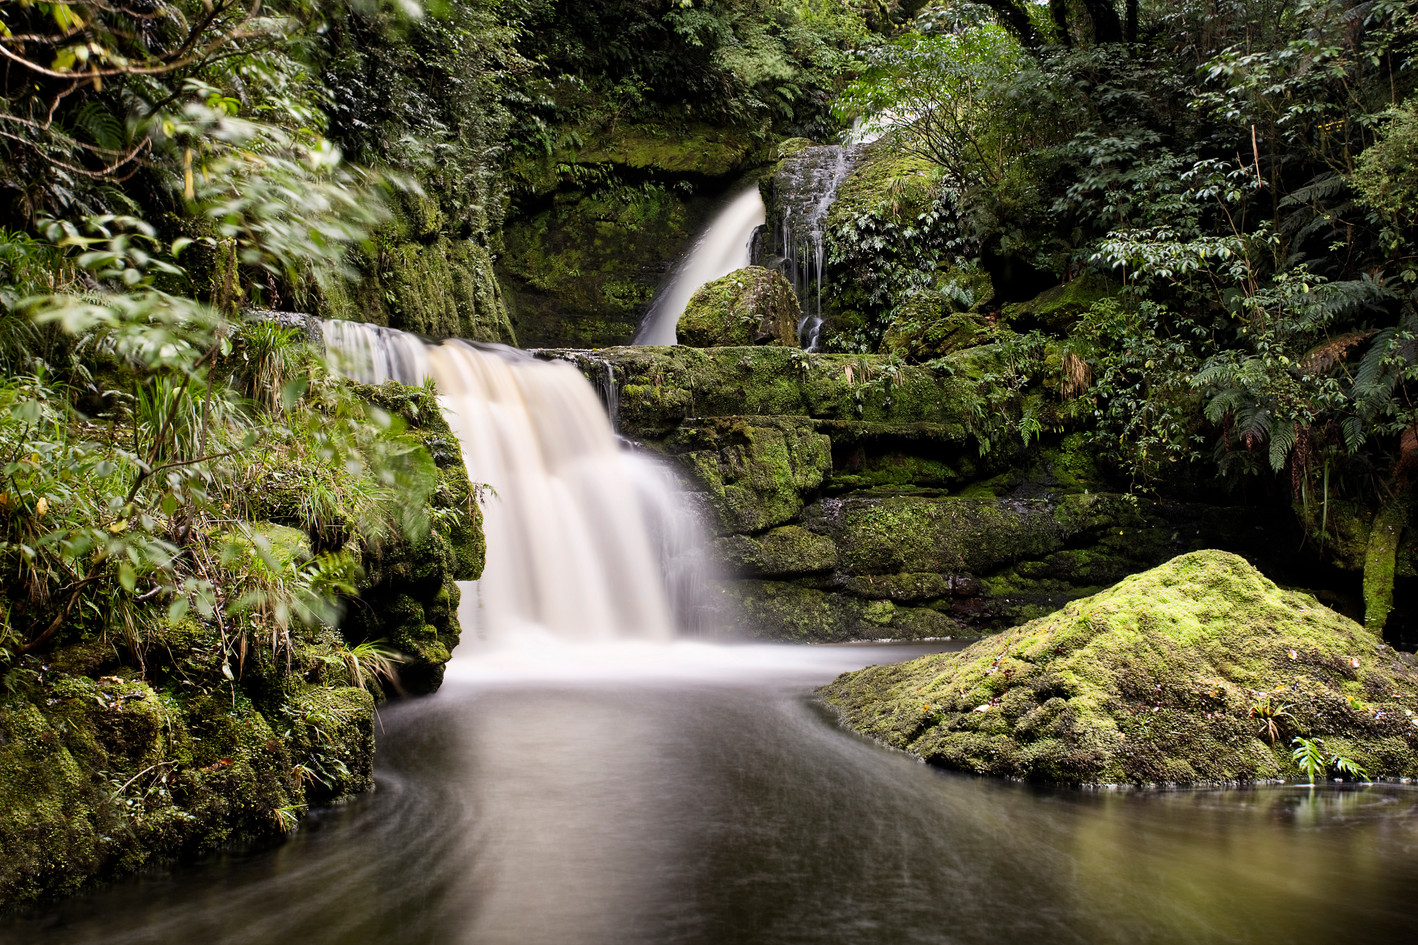 McLean Falls is the most beautiful cascade in the Catlins